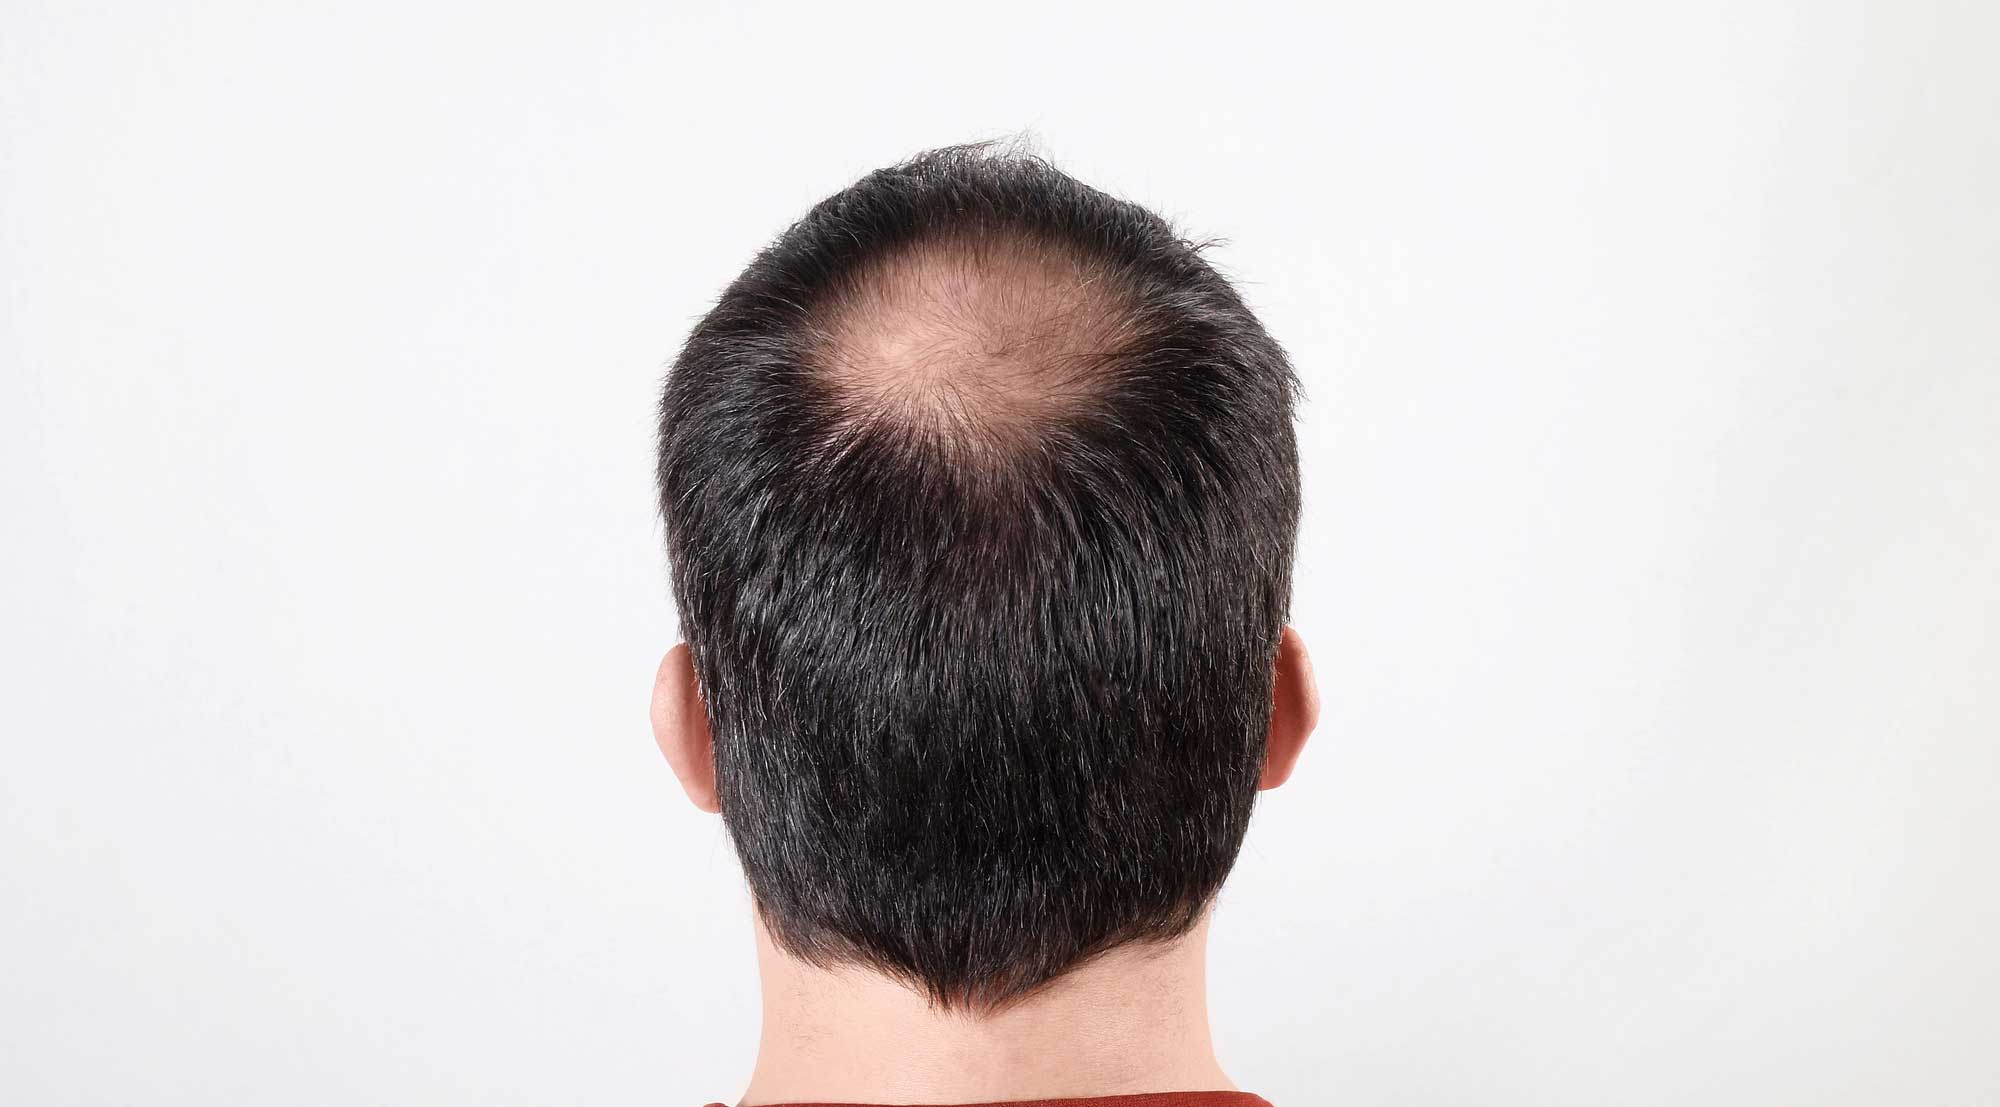 Scientists Have Found a Way to Use Stem Cells to Grow New Hair